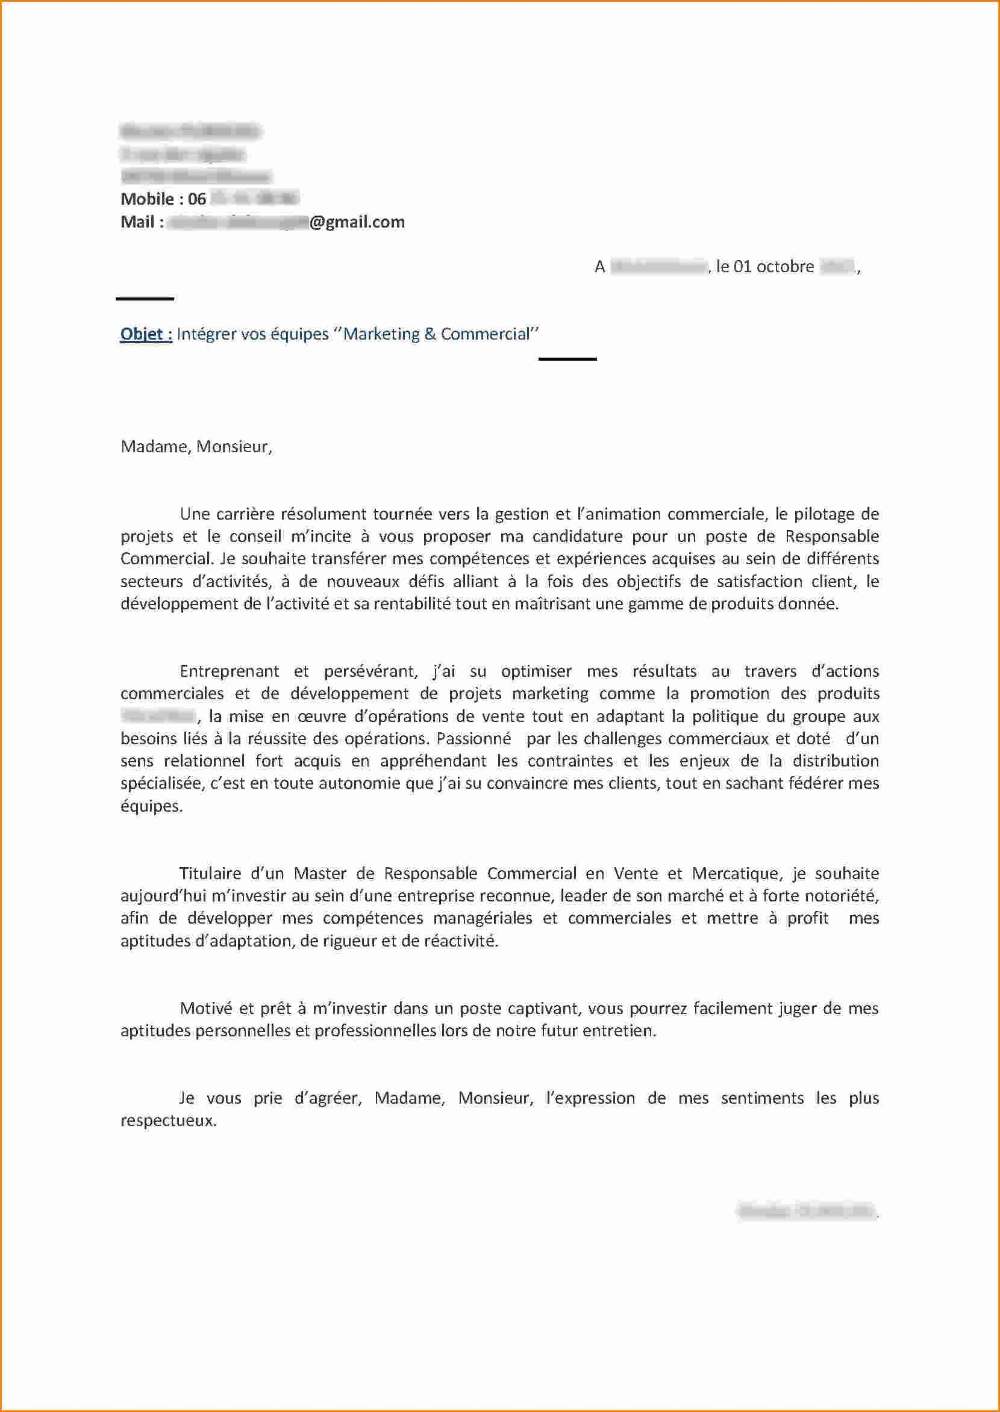 Lettre De Motivation Sans Diplome Et Sans Experience : lettre, motivation, diplome, experience, Modèle, Lettre, Motivation, Vision, Vente, Conseil, Recherche, Google, Reference, Letter, Student,, Templates,, Motivational